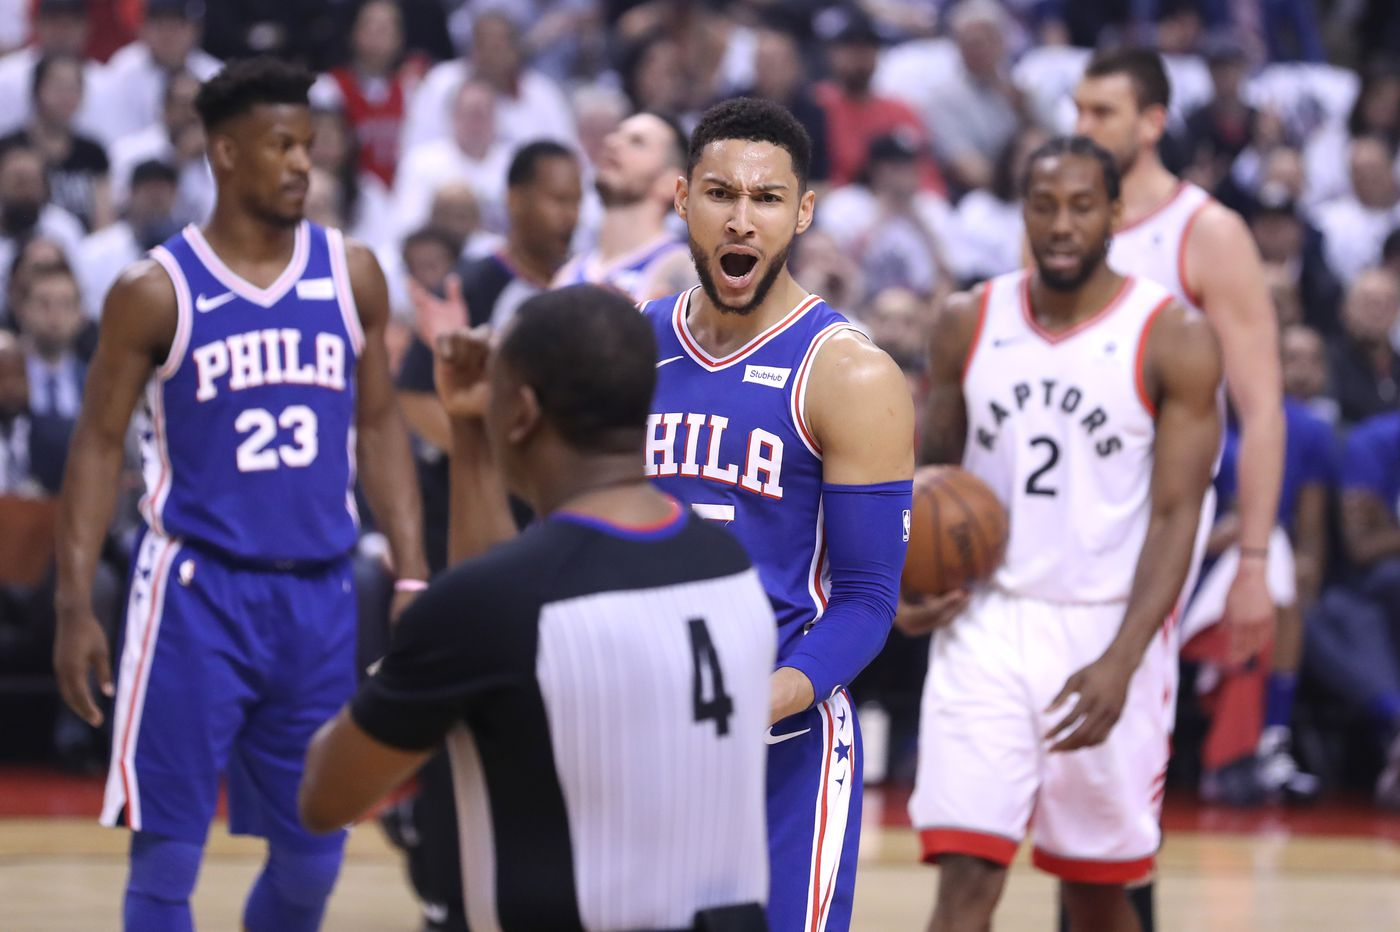 42e021b4e42 Sixers-Raptors: Reaction to Philly's blowout loss in Toronto to fall  behind, 3-2, in NBA playoffs series